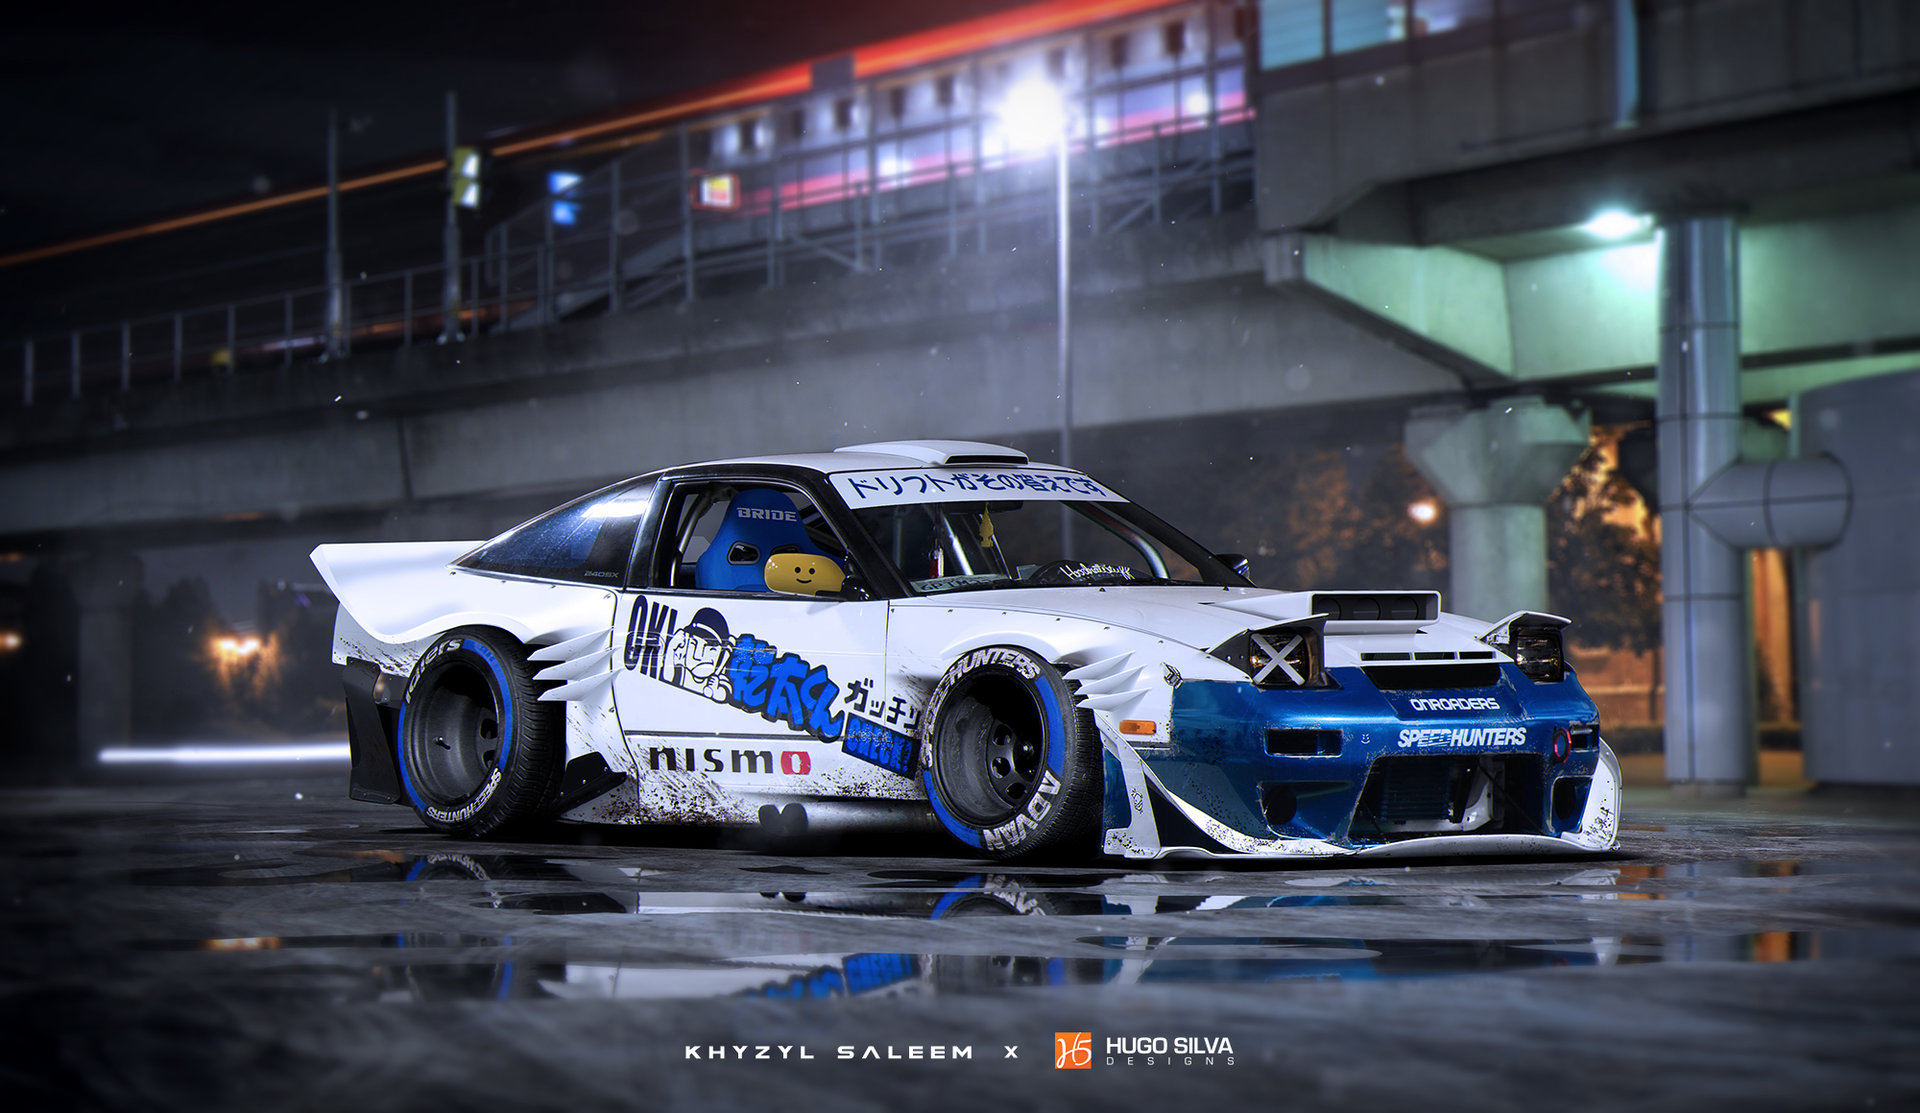 240sx Fairlady >> Khyzyl Saleem designs are absolutely amazing. Find his designs here: https://www.artstation.com ...